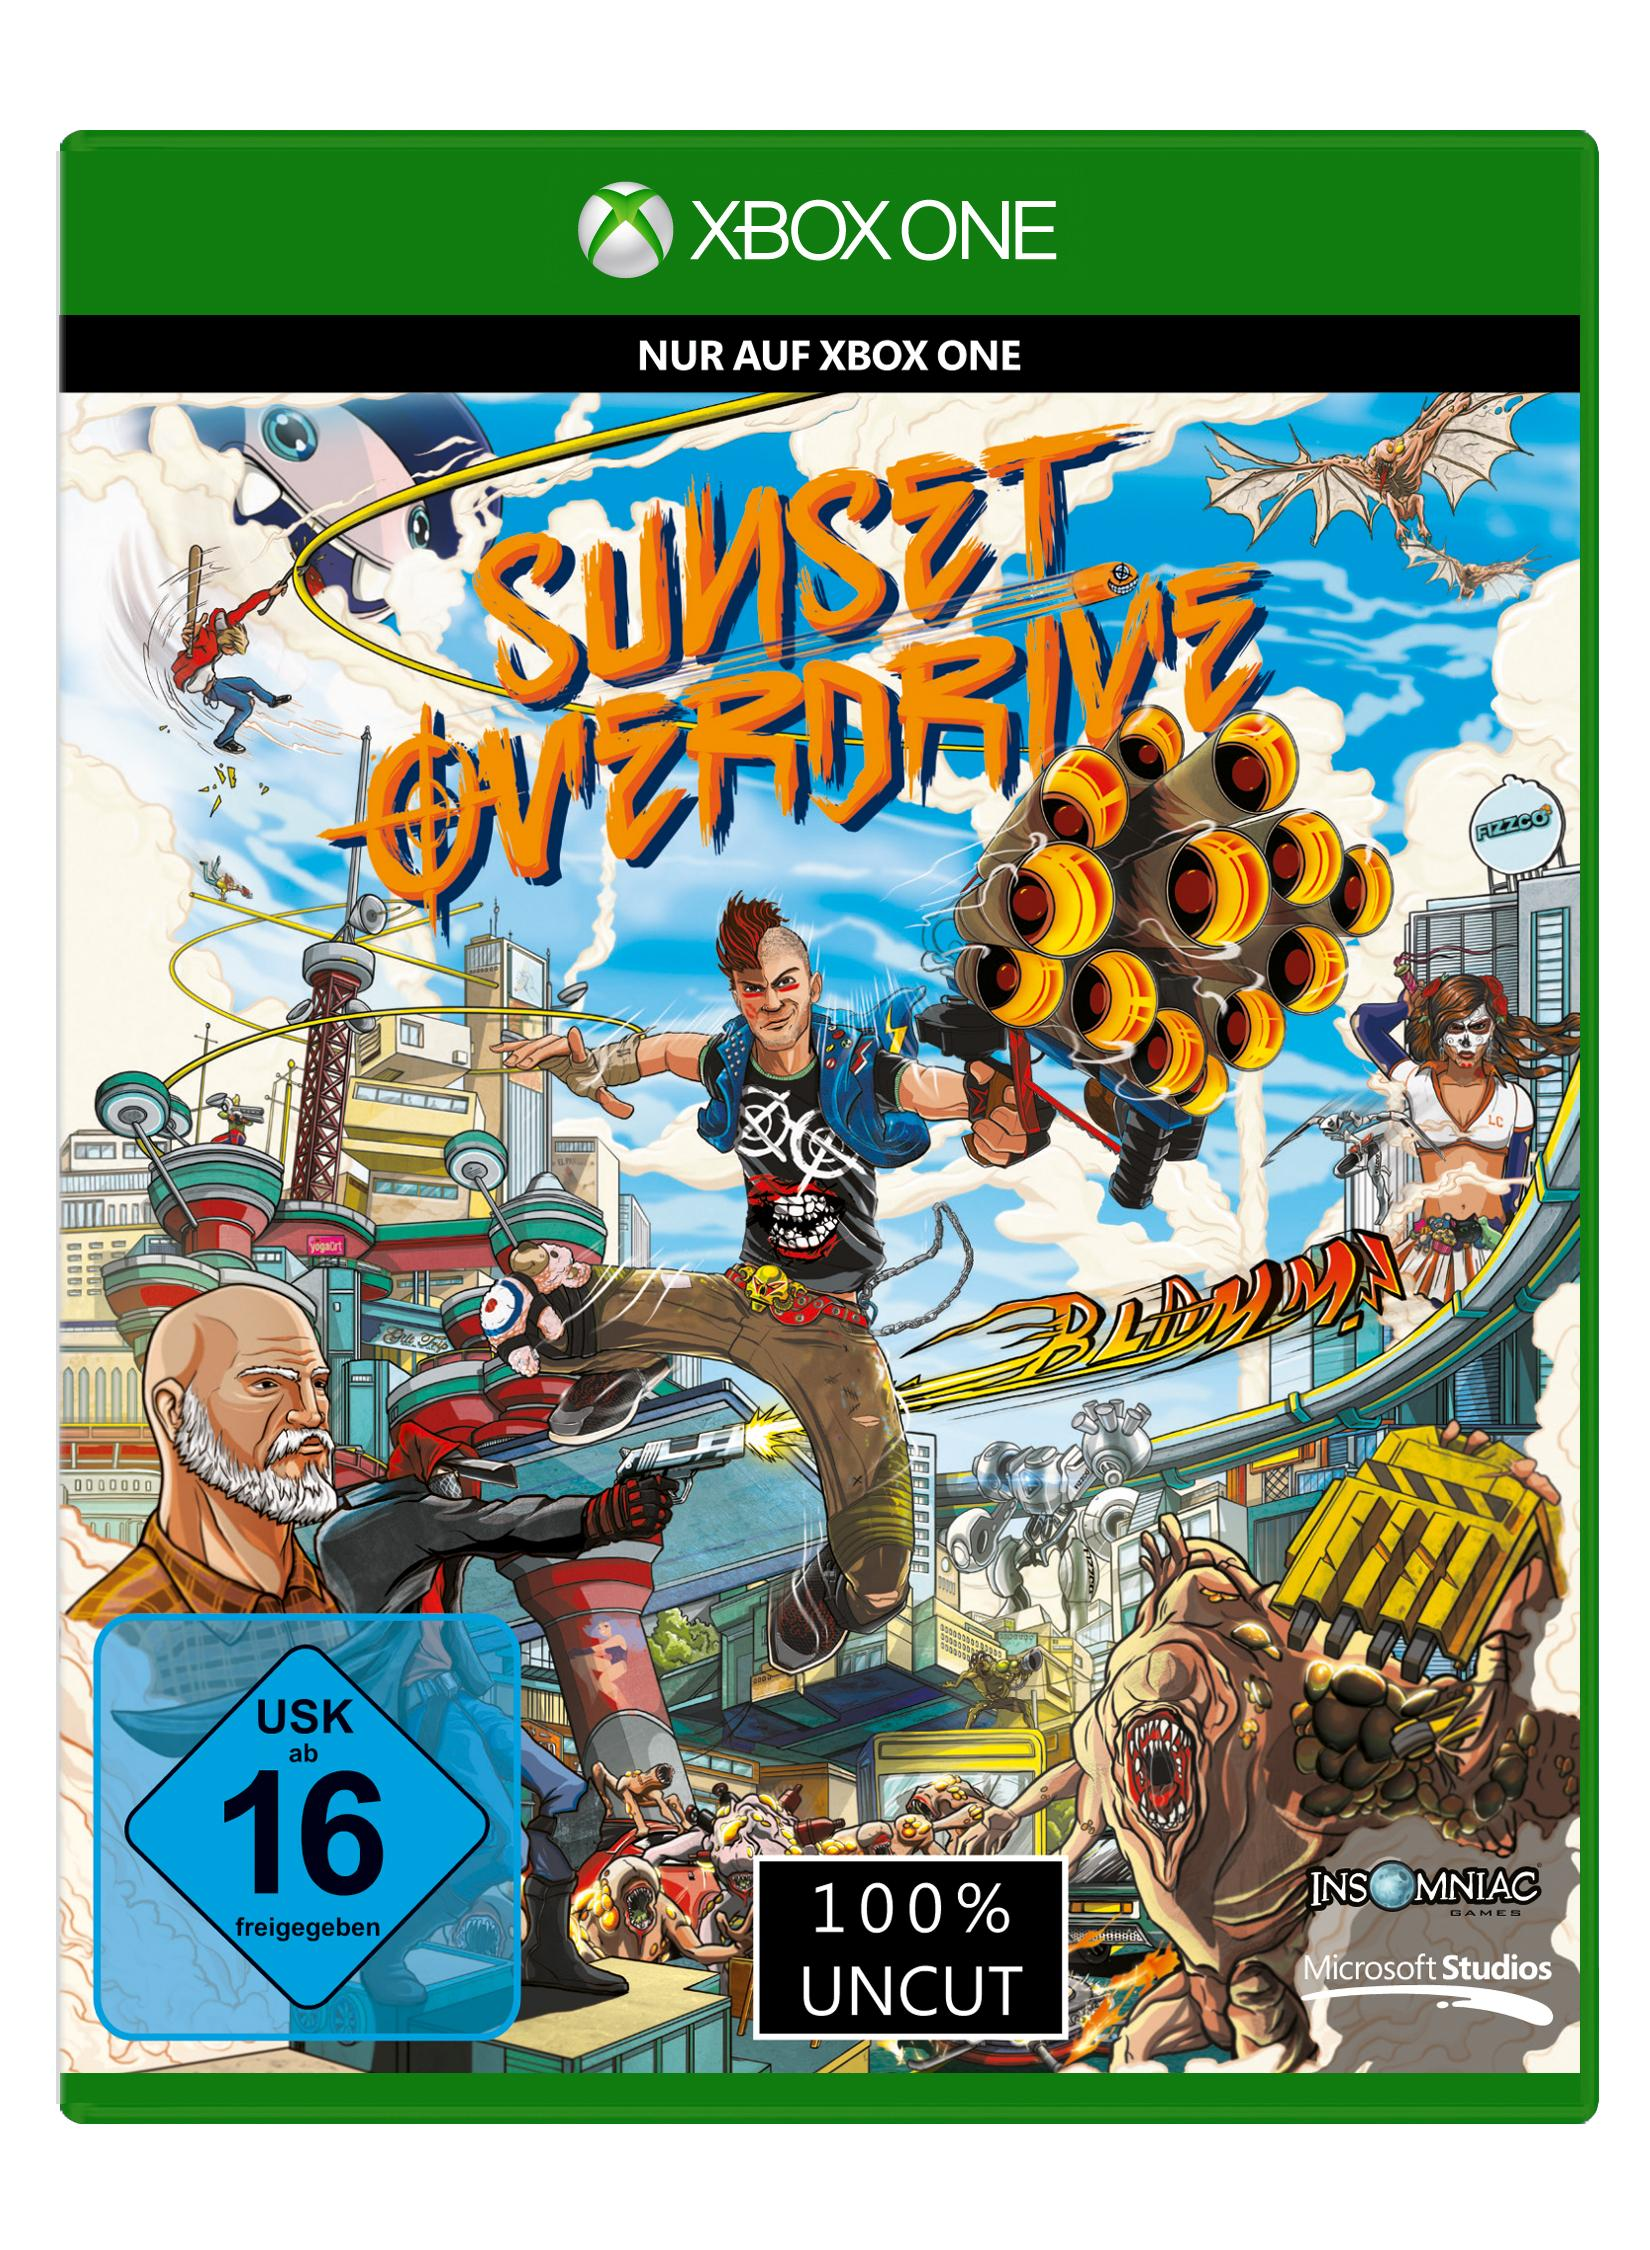 Xbox One Konsole Weiss Inkl Sunset Overdrive Dlc